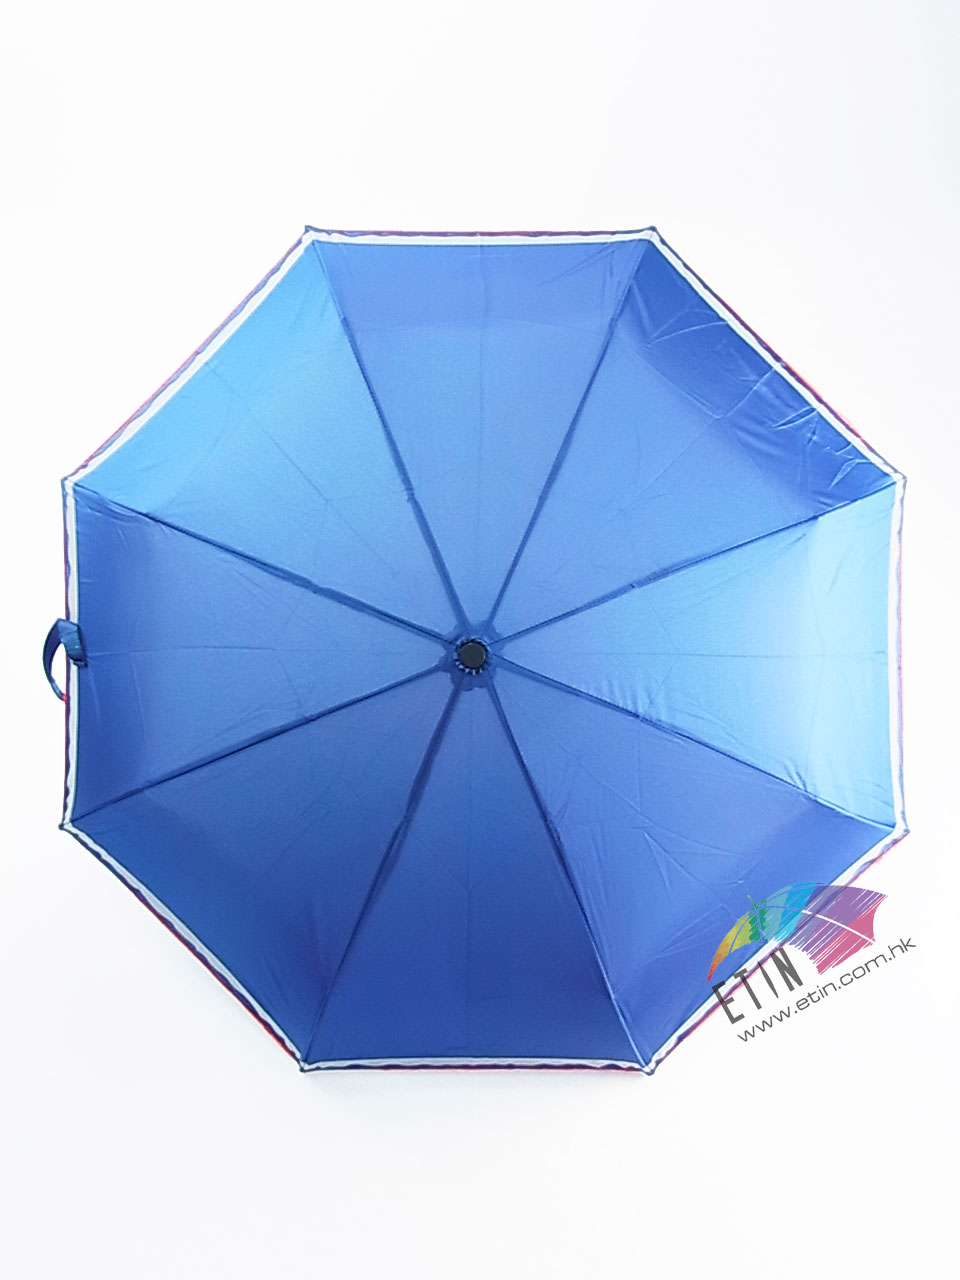 Etin Umbrella Promotional B032